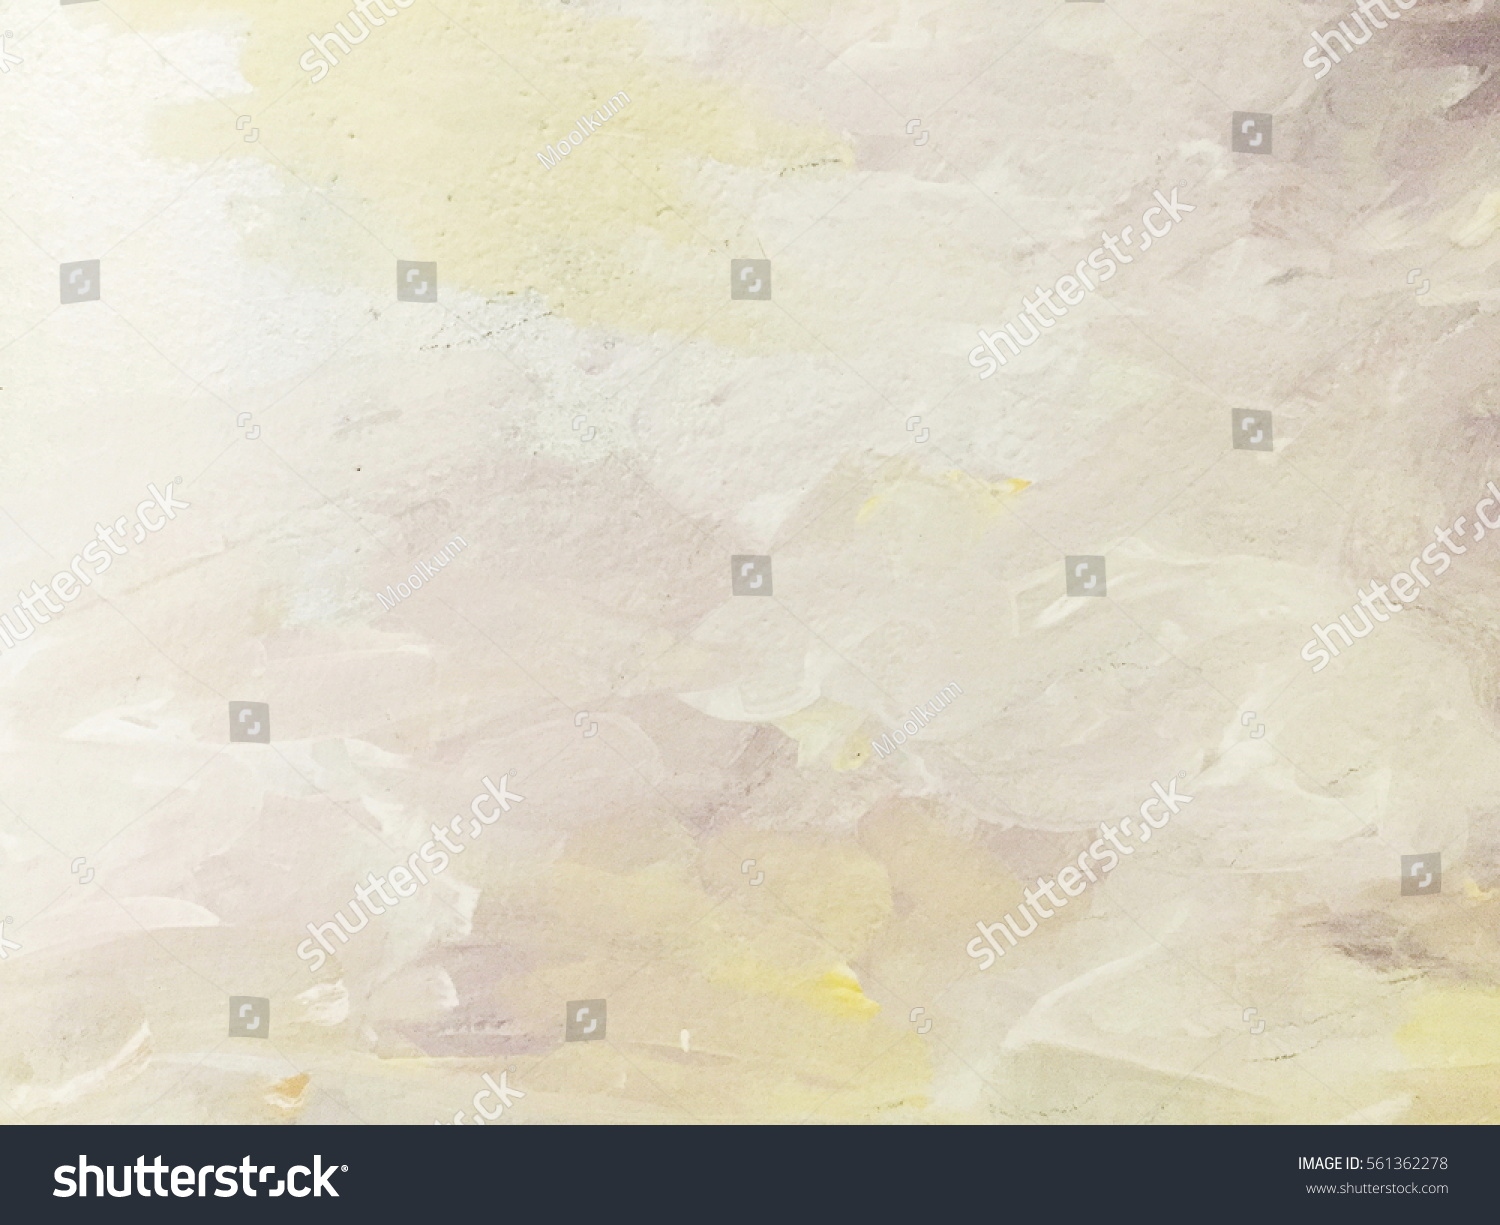 Abstract painting art background #561362278